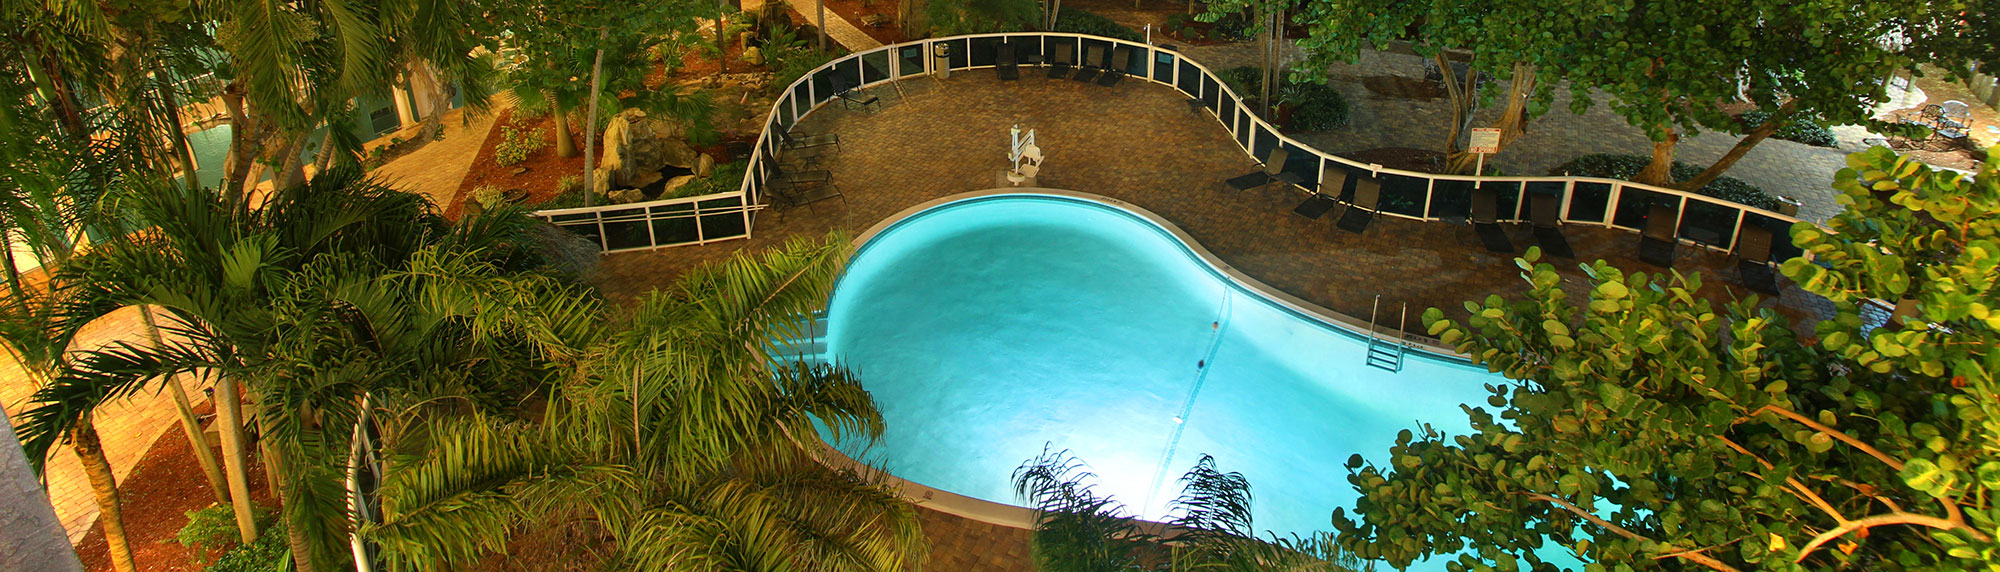 Hotels Near Fll Fort Lauderdale Grand Hotel Fort Lauderdale Florida